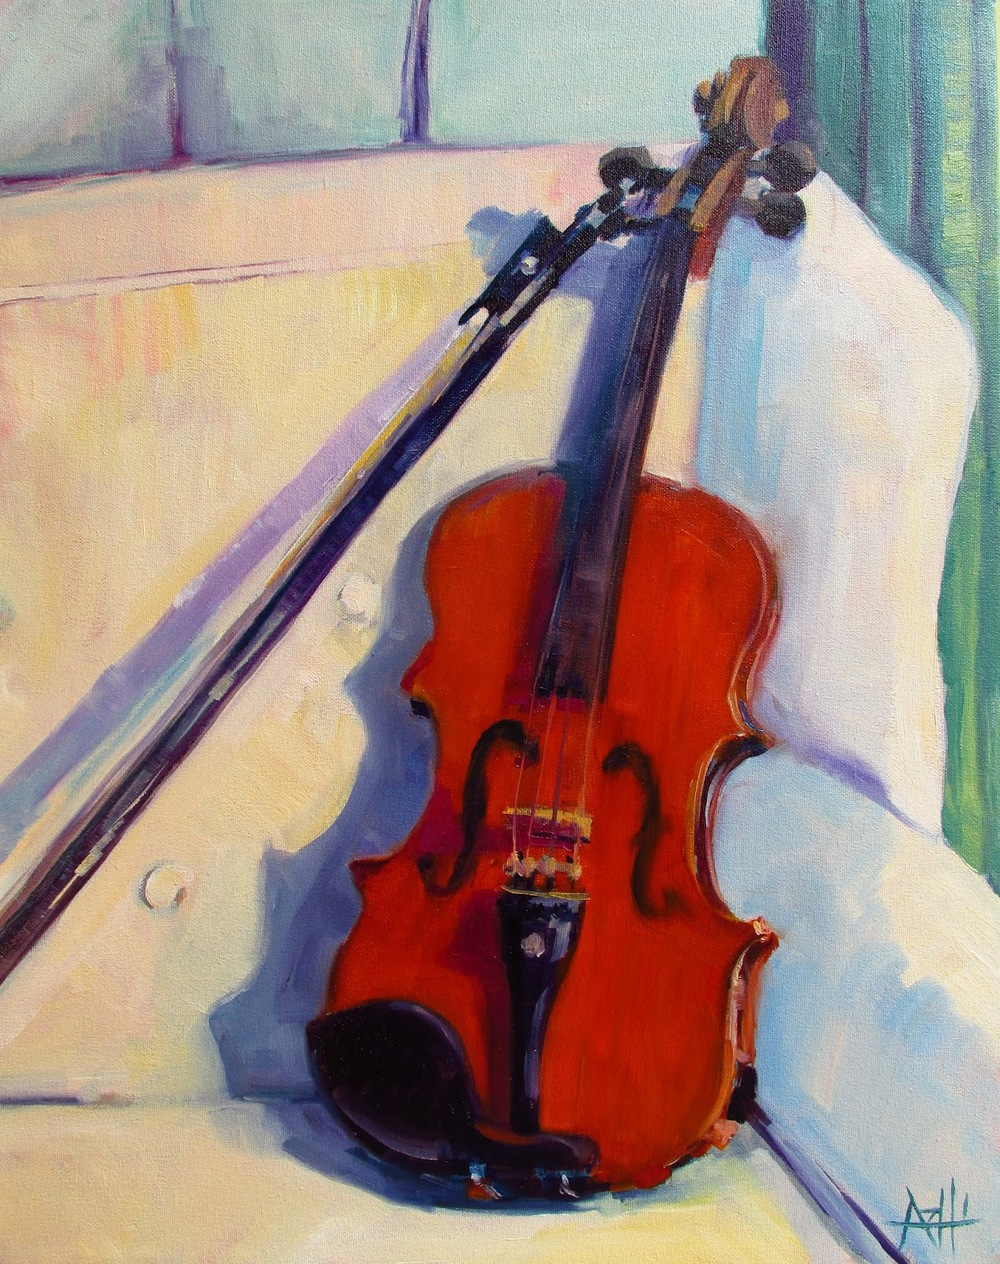 "SOLD, The Violin, Copyright 2016 Hirschten, Oil on Canvas, 16"" x 20"""